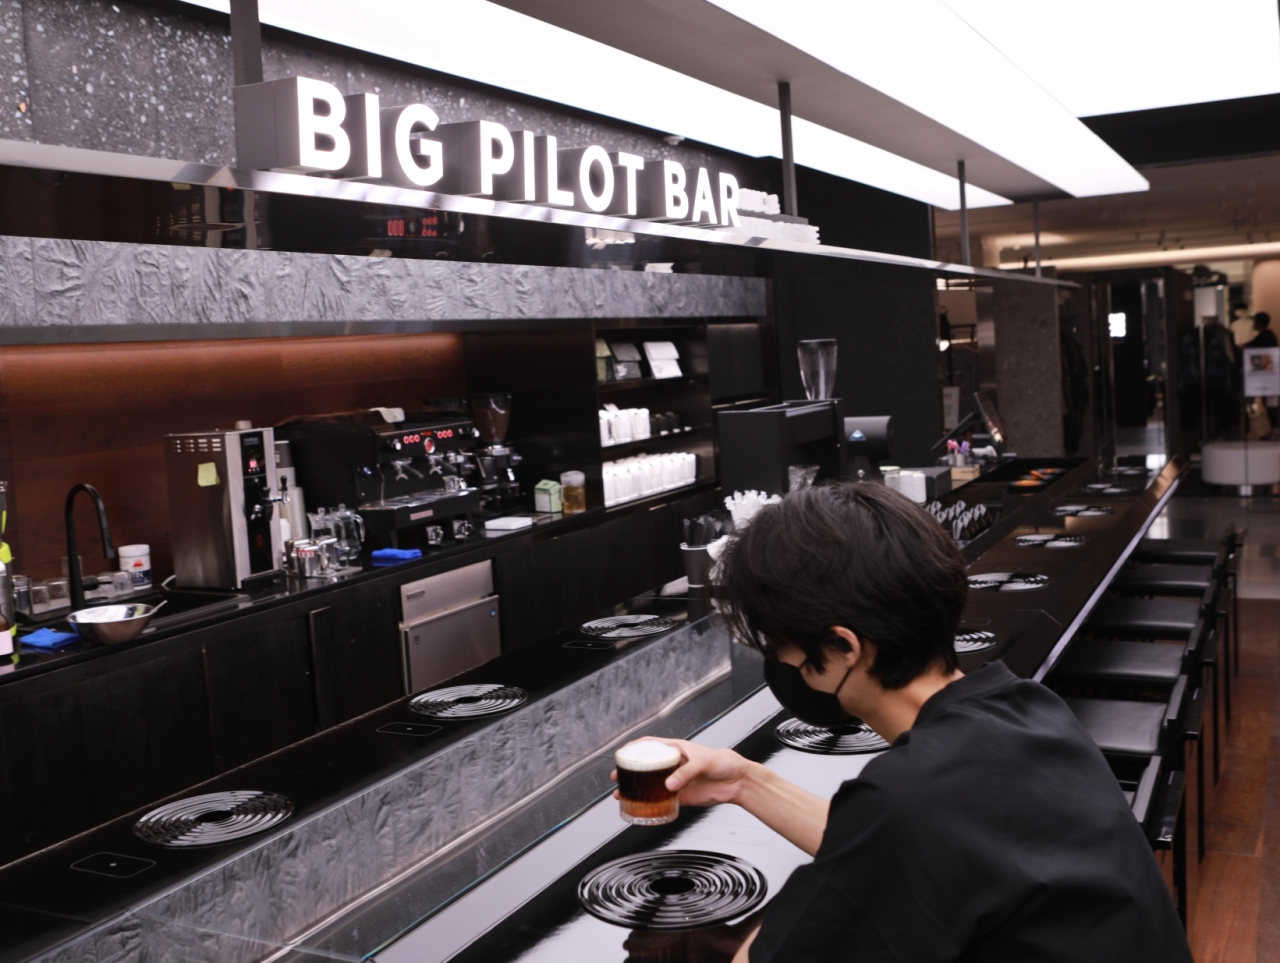 A man drinks coffee at IWC's The Big Pilot Bar in Lotte Department Store's Euljiro flagship branch. (Lotte Shopping)